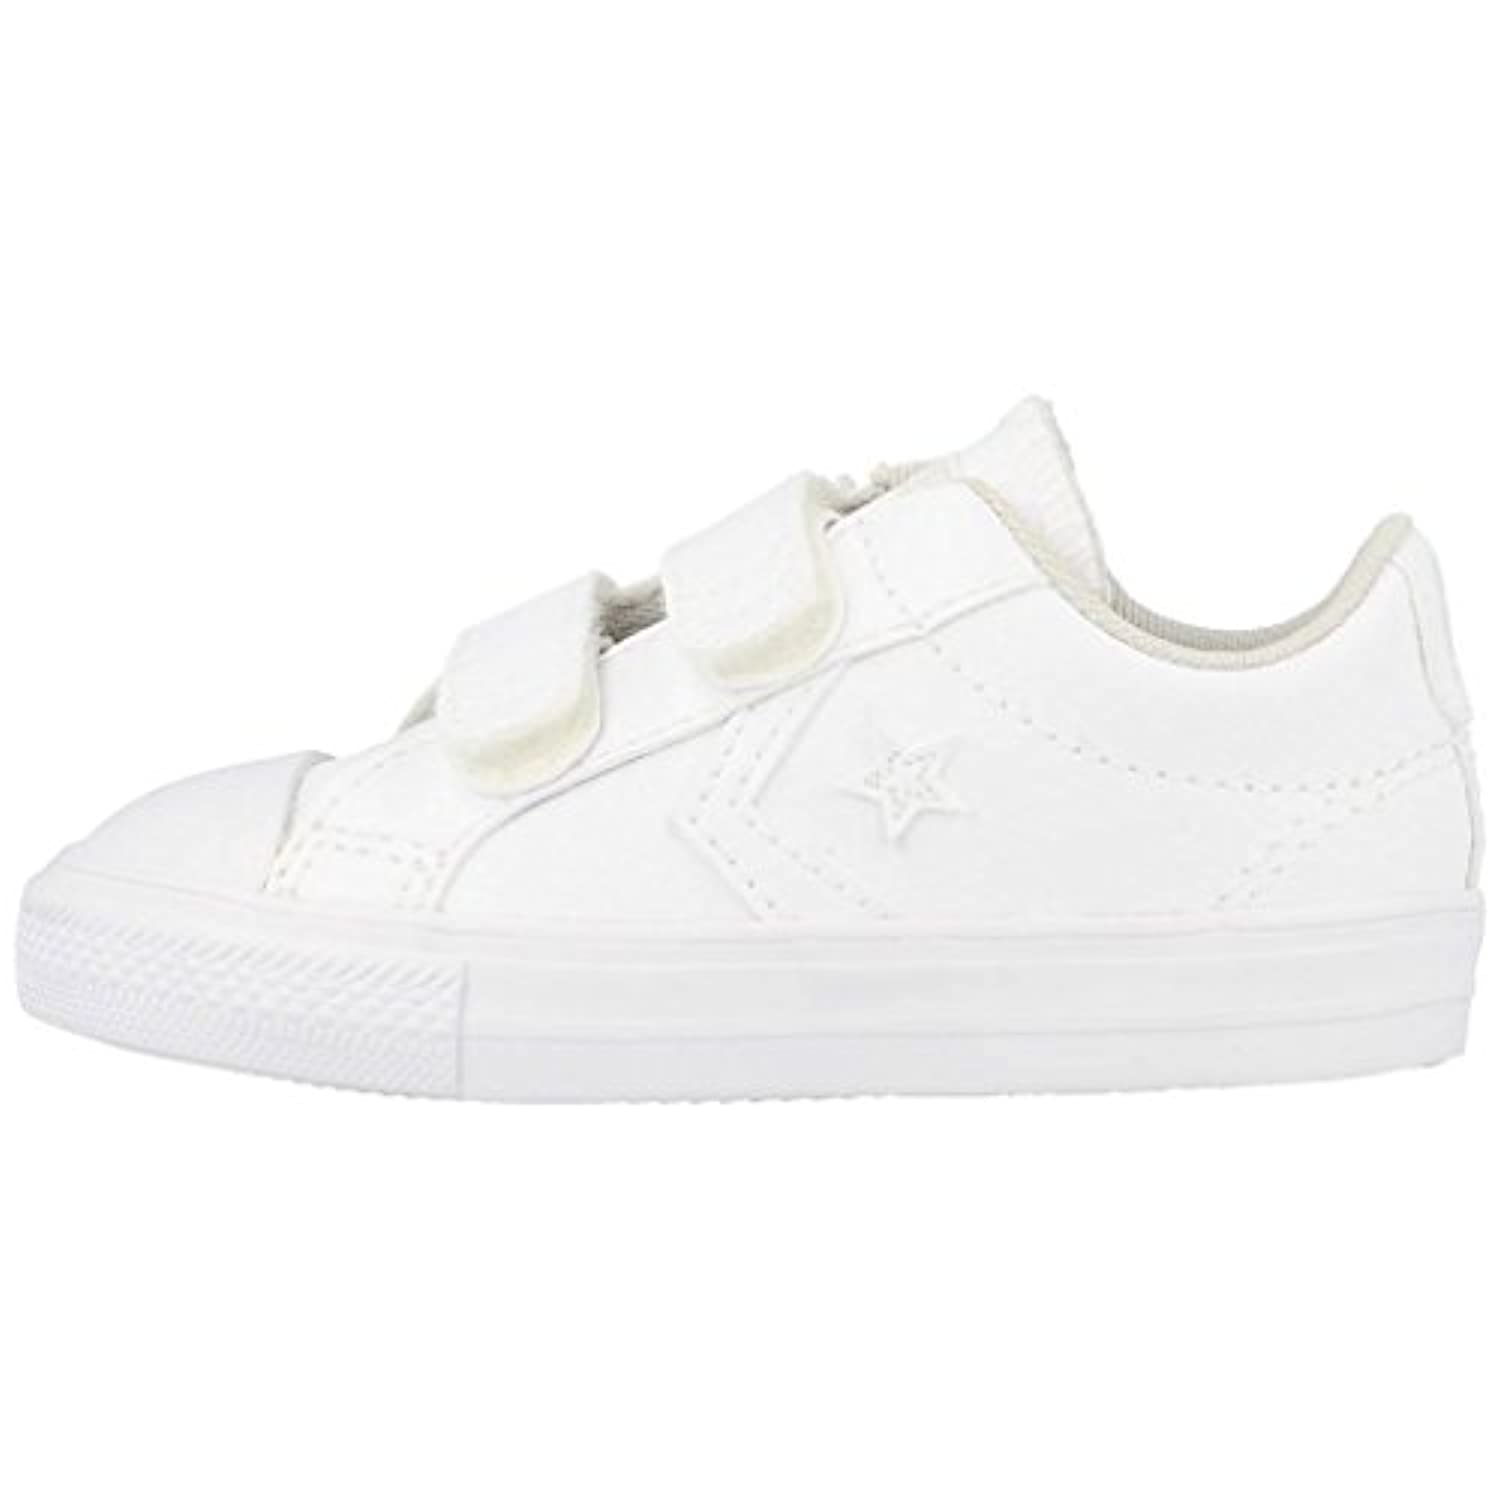 Converse Star Player 3V Infant White Synthetic 4 UK Child